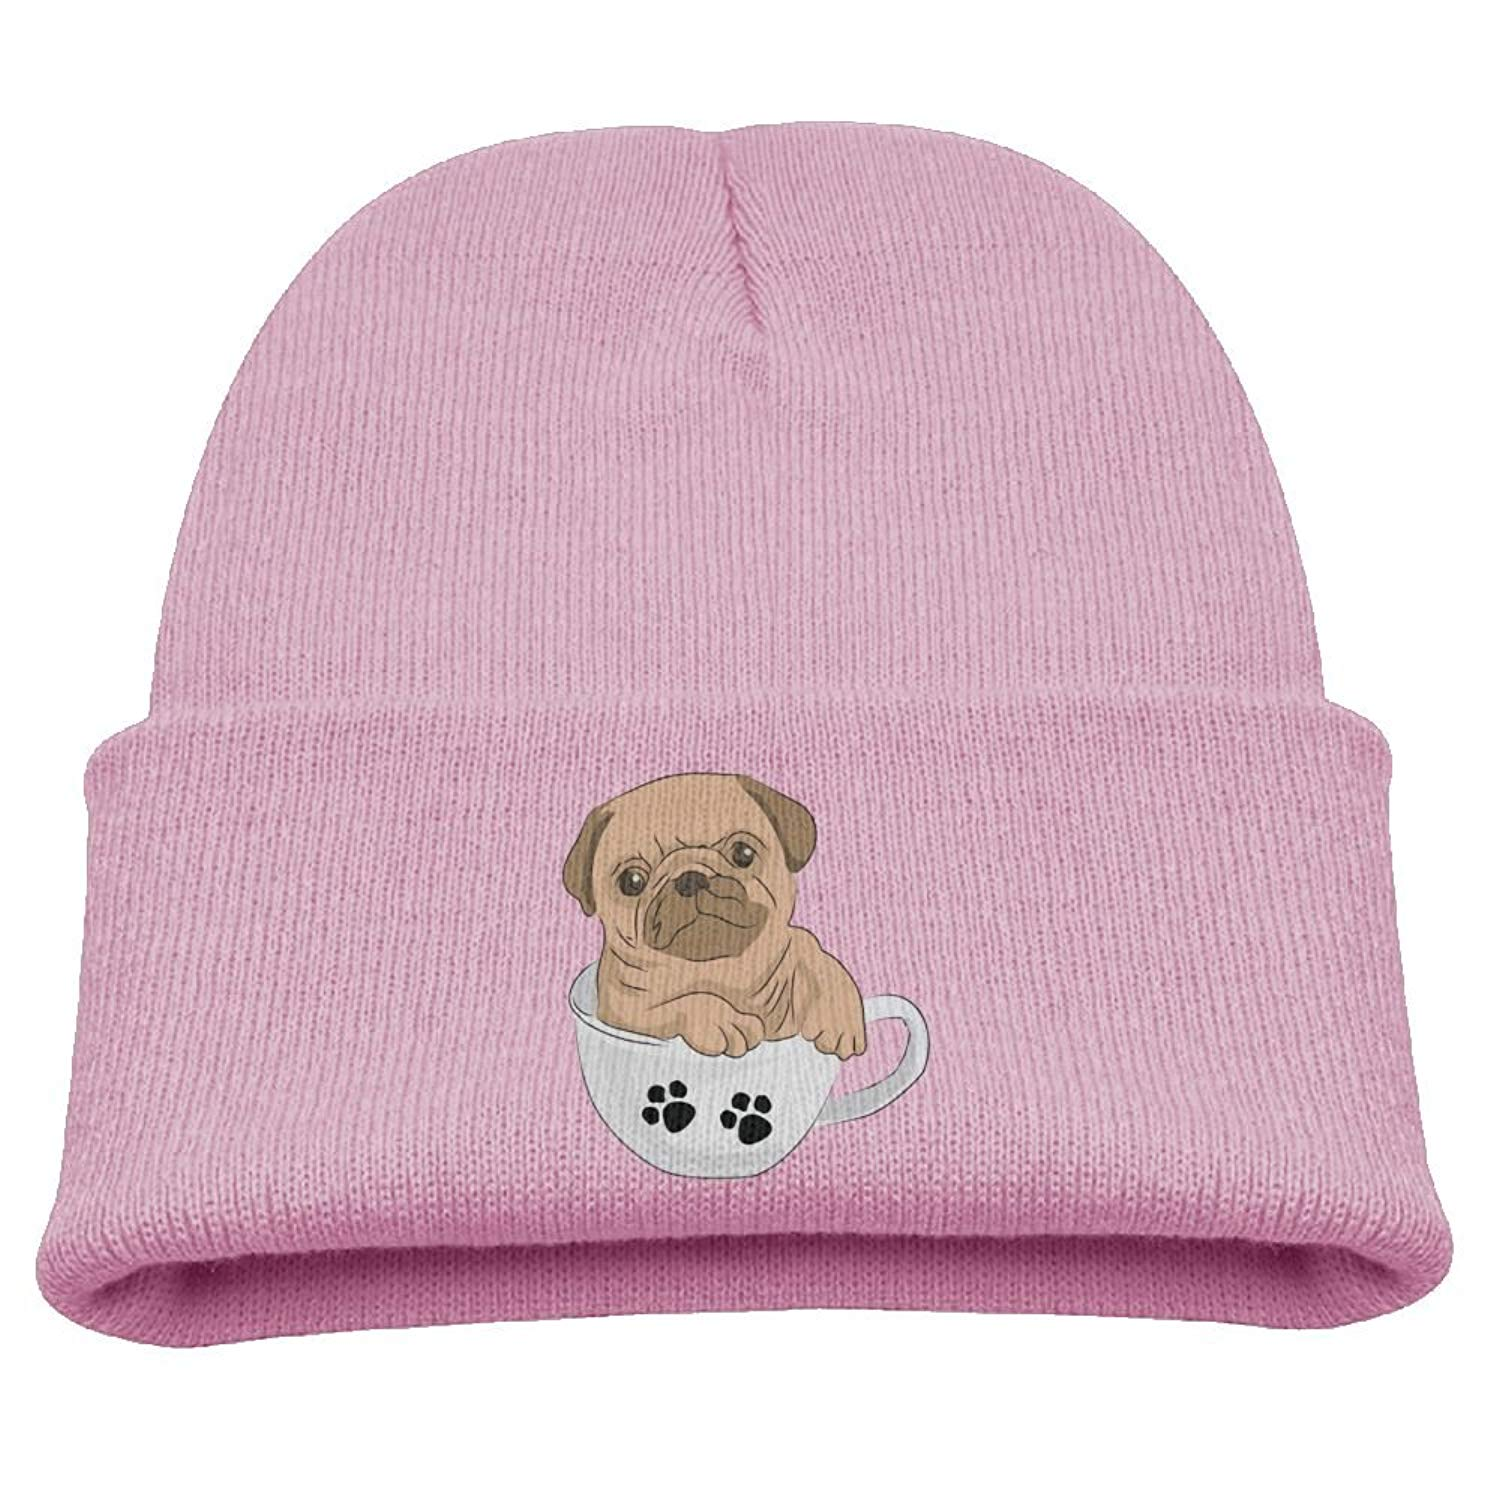 Aiw Wfdnn Kids Knit Cap Cute Dog Pug Warm Winter Hat for Boys/Girls